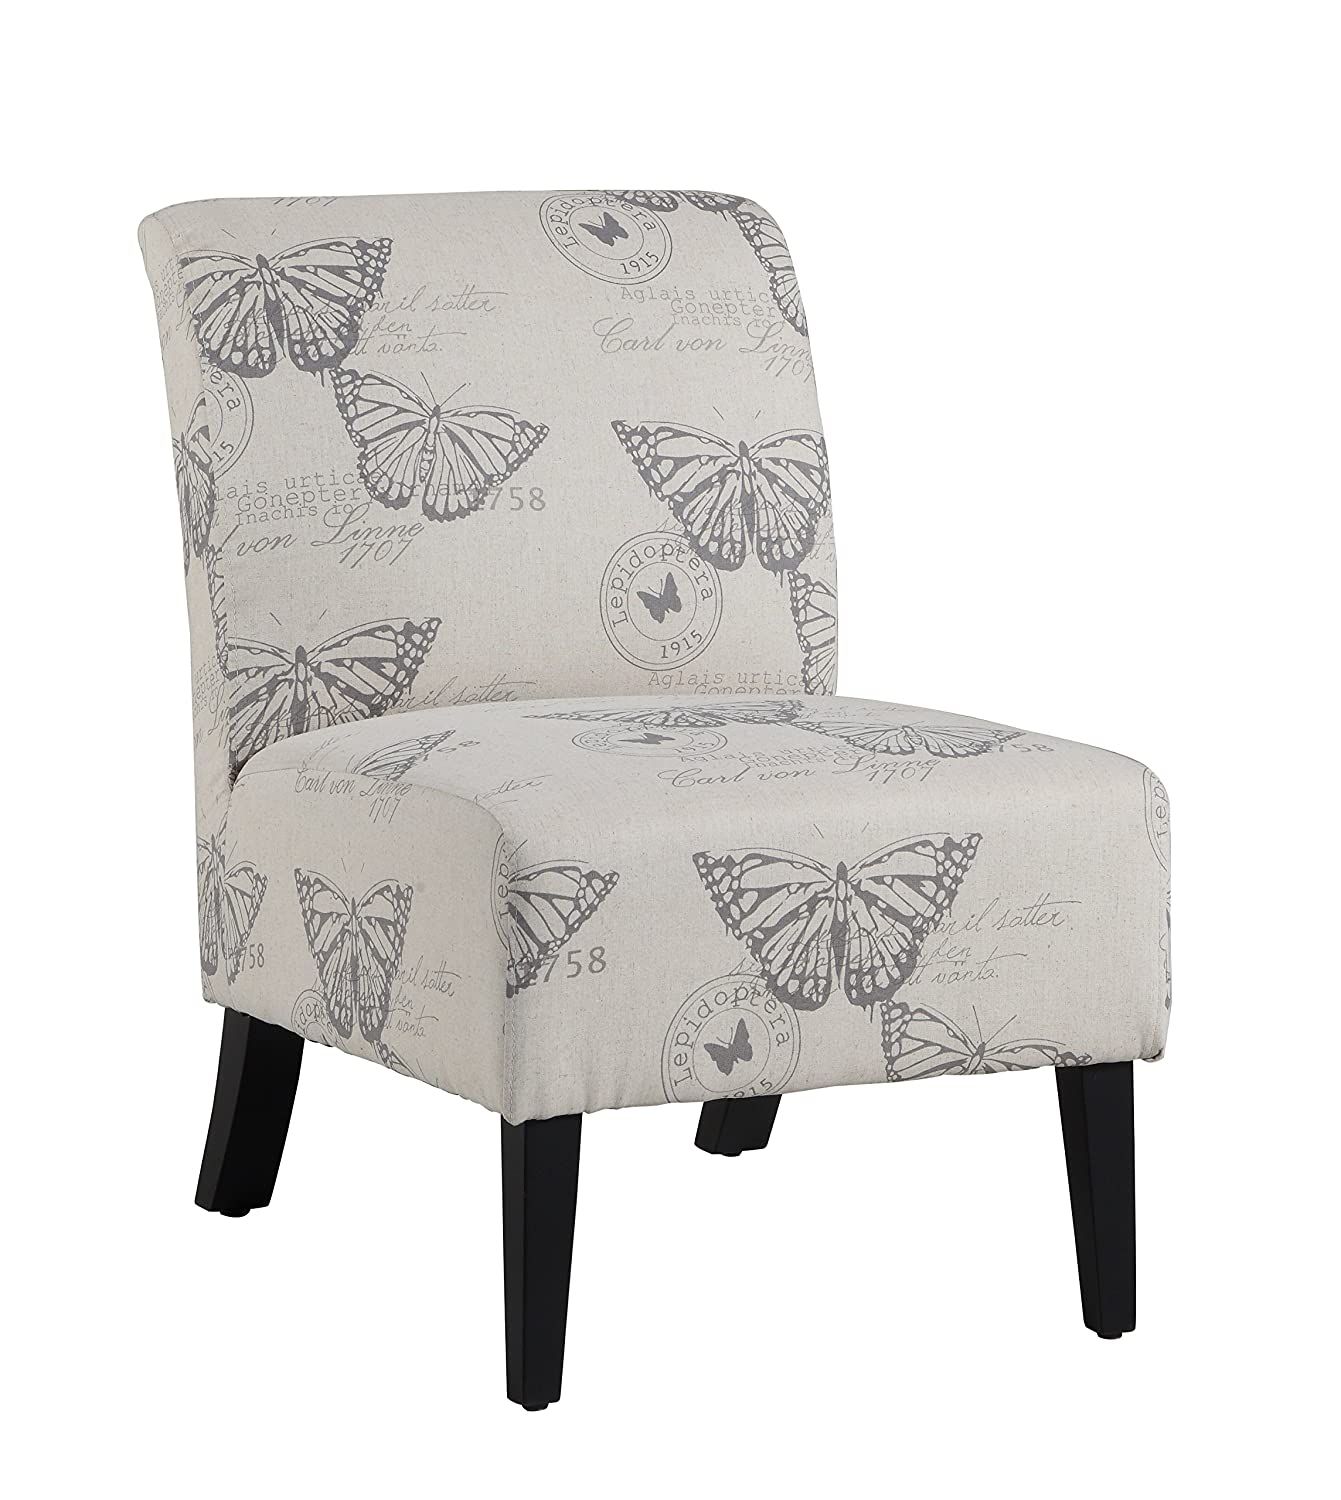 Amazon.com: Linon 98320BUTT01U Linen Lily Chair, Butterfly: Kitchen U0026 Dining